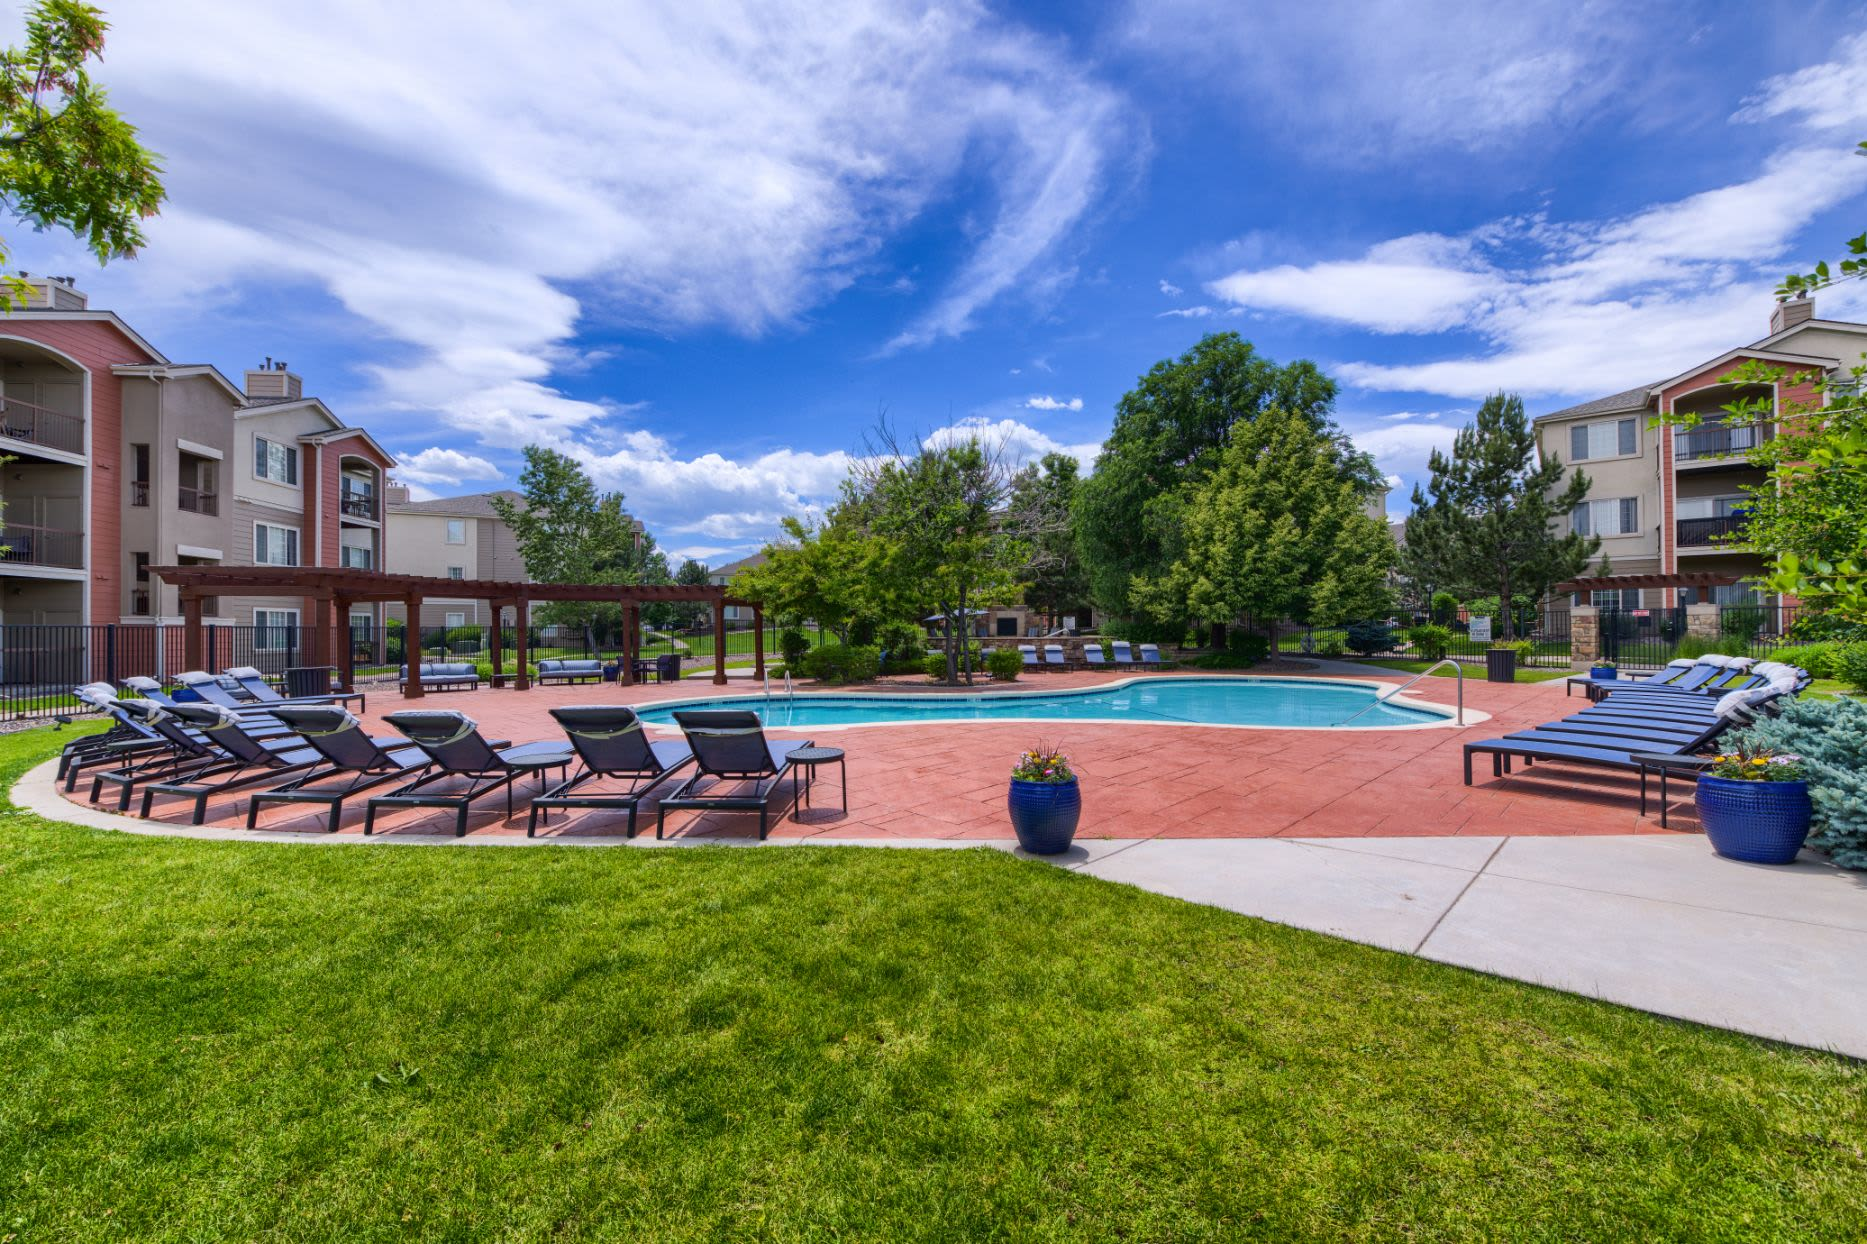 Sun chairs around the pool at Whisper Creek Apartment Homes in Lakewood, Colorado